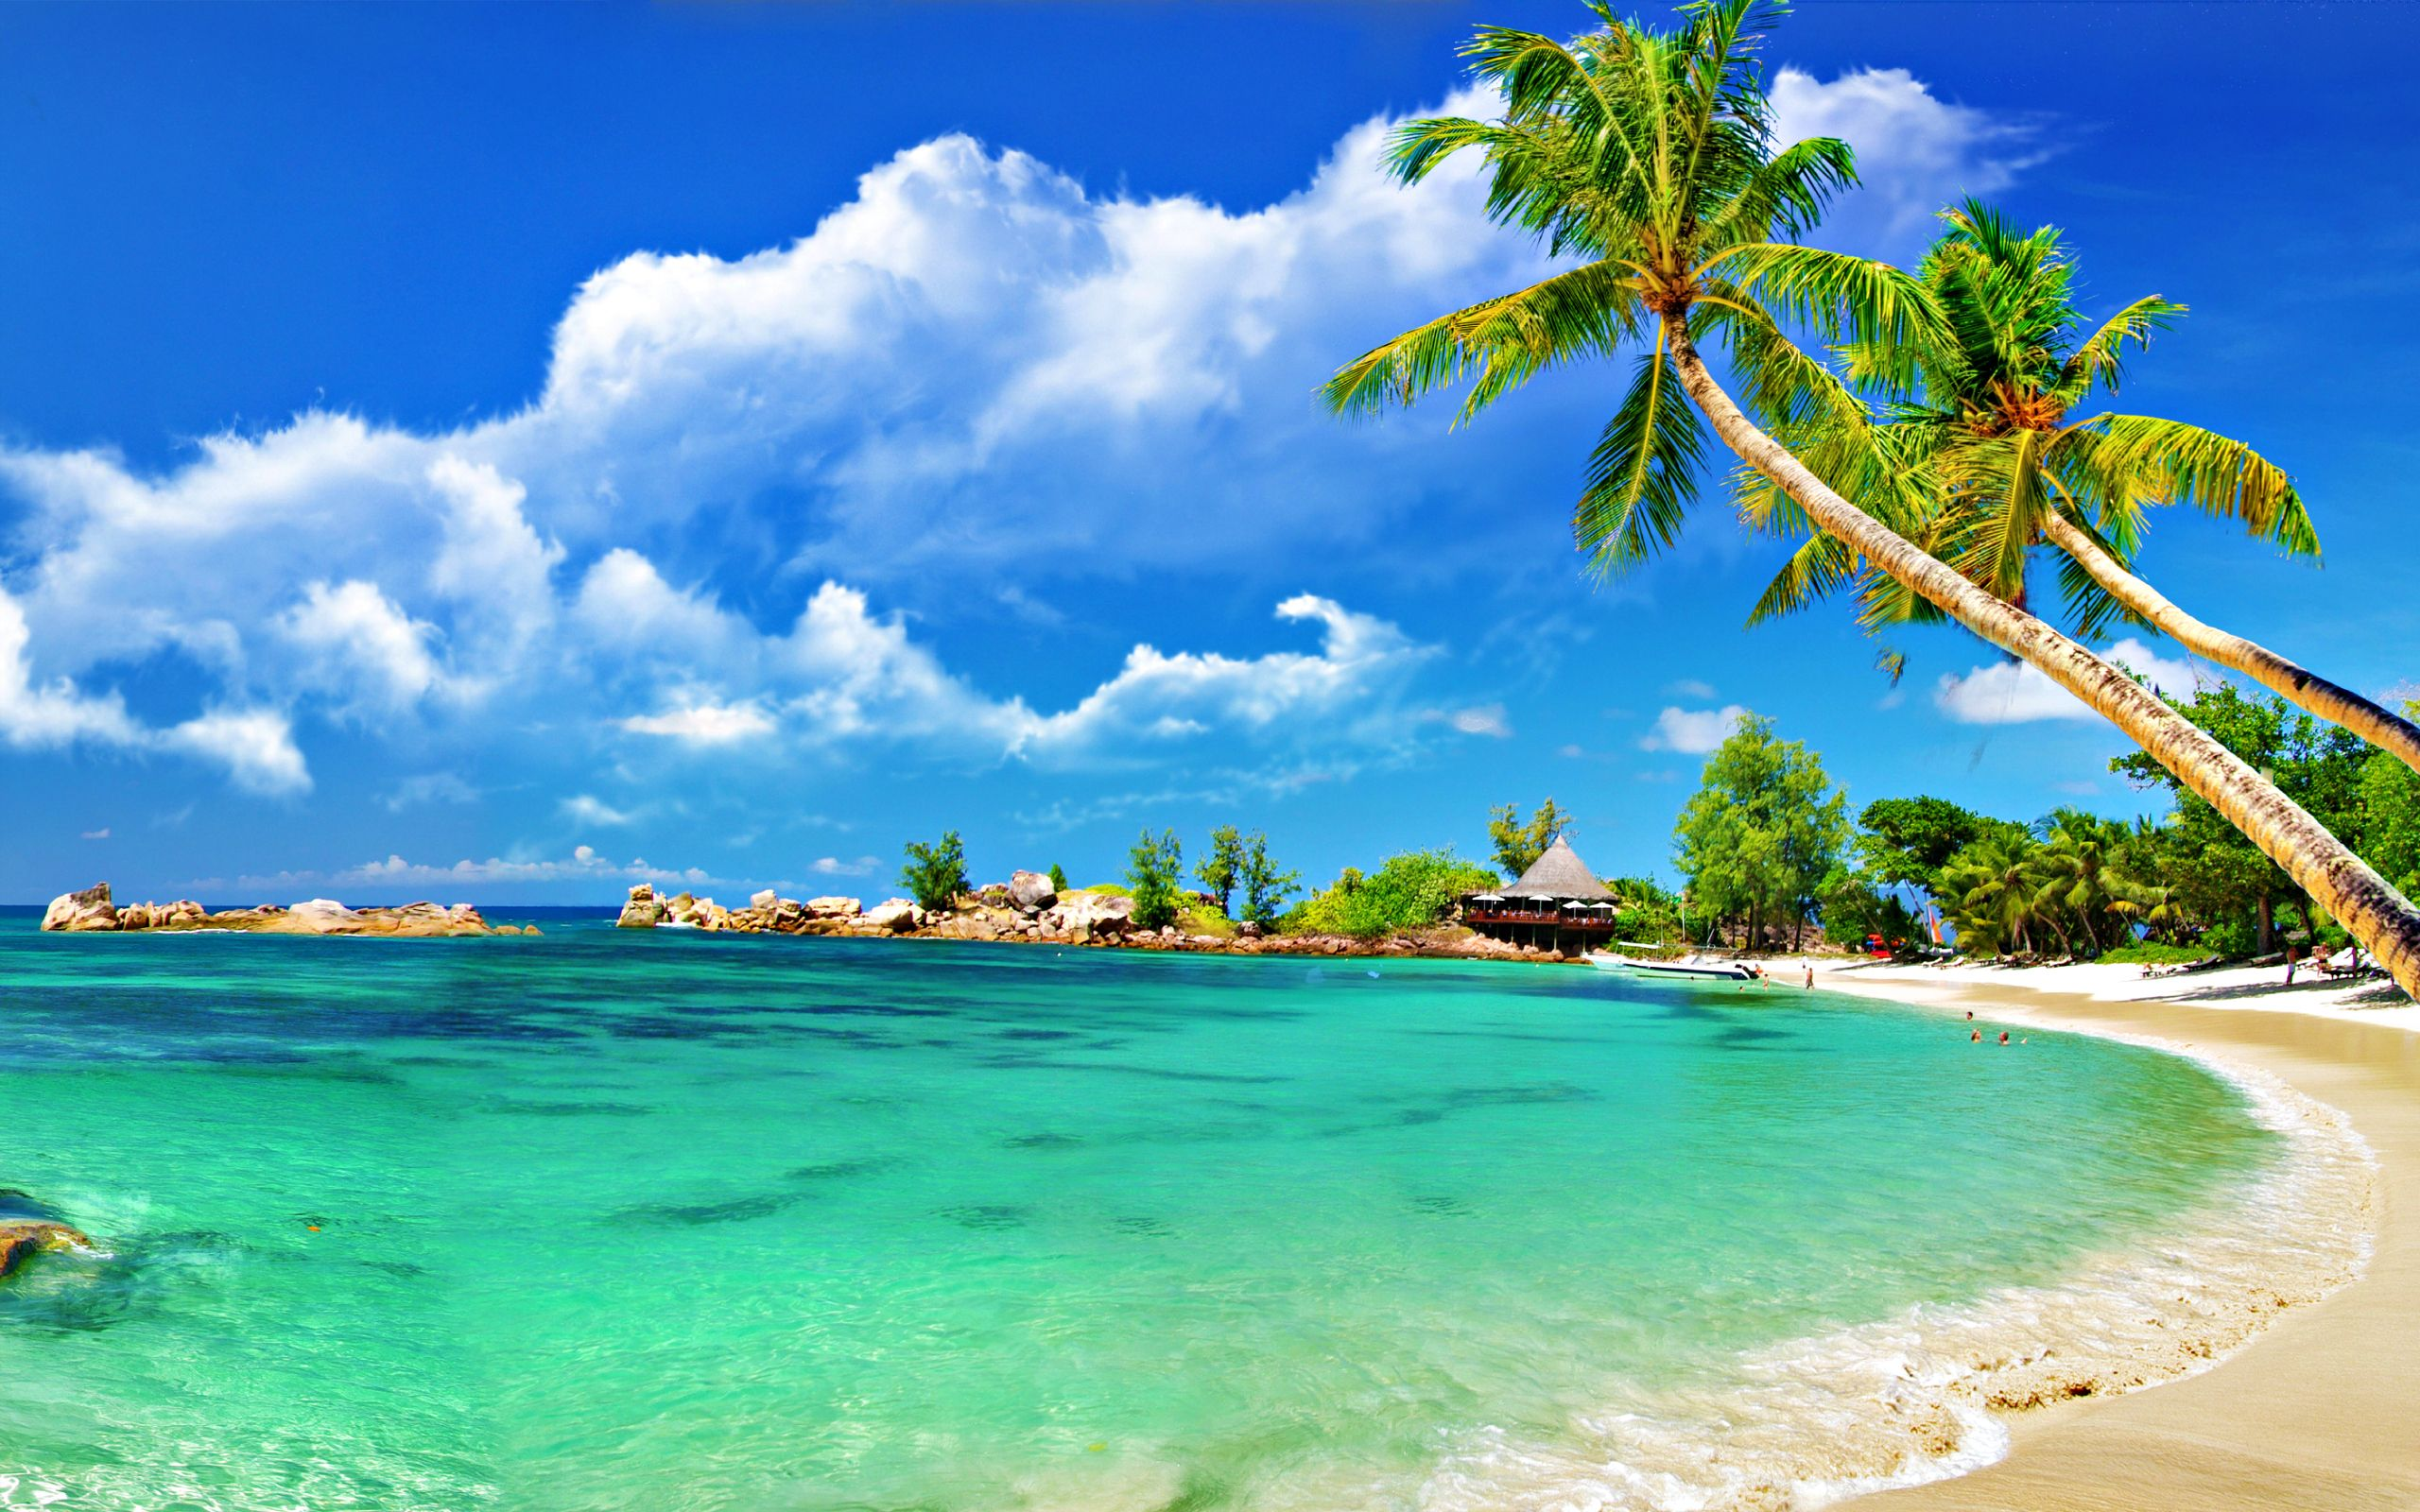 Background Images Of Caribbean Island Cuba Wallpaper View